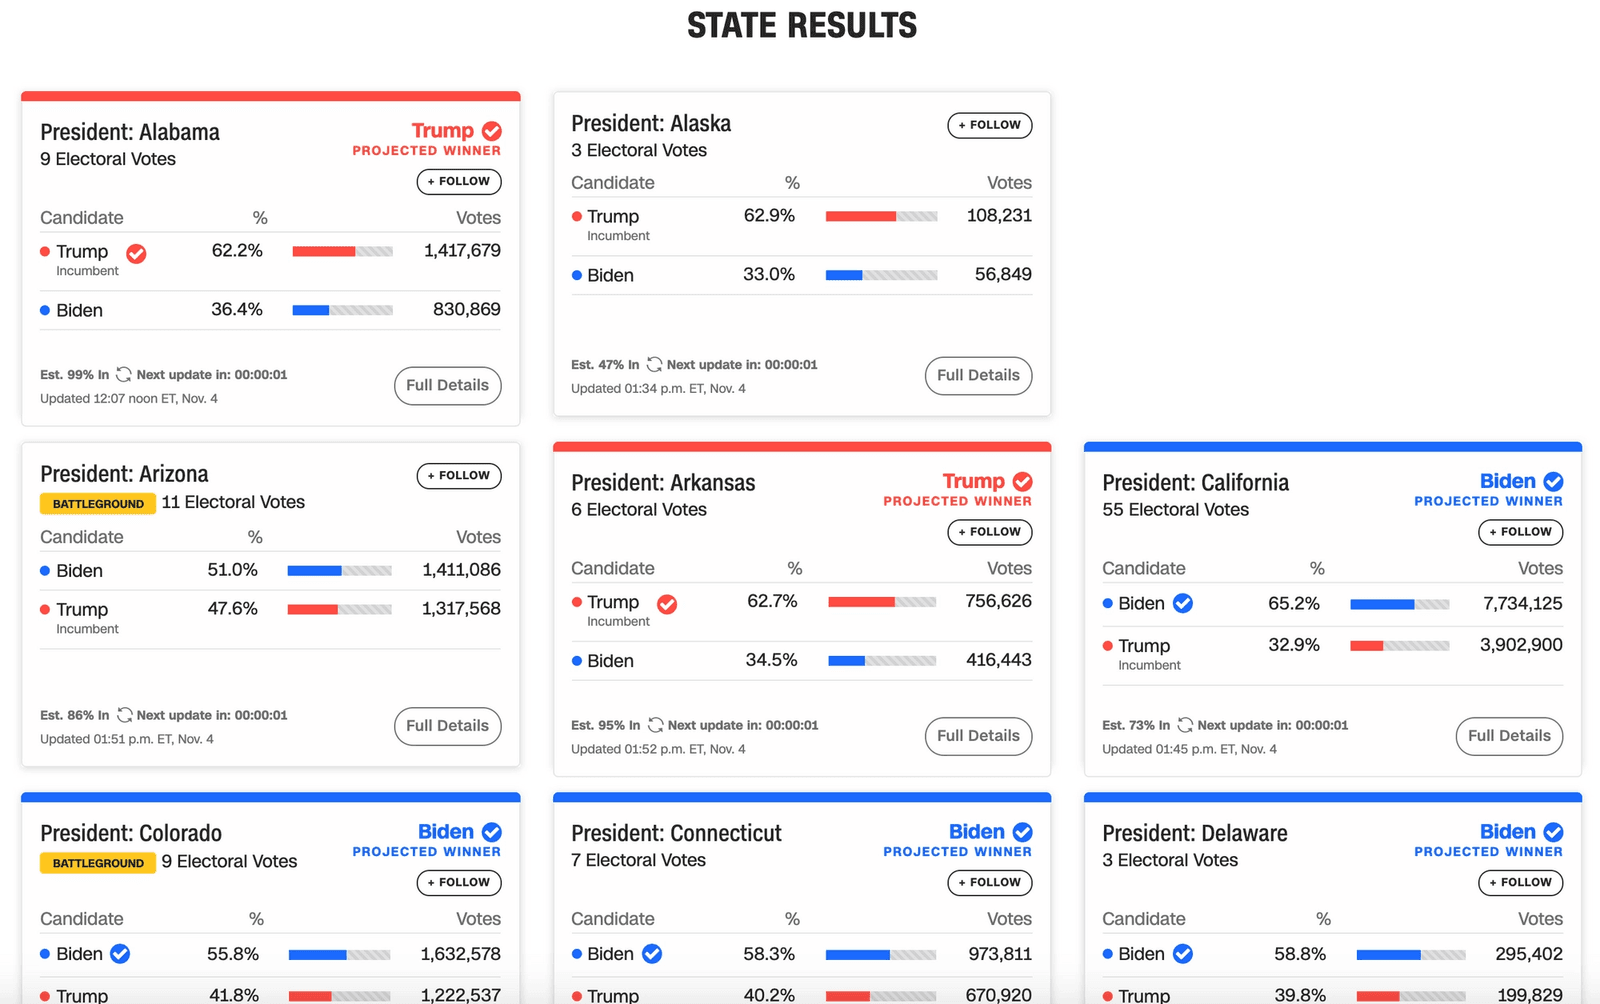 CNN's election results: lots of cards with bright blue, bright red and bright yellow colors. It contains the state name, label (battleground state), number of electoral votes, projected winner, votes per candidate, percentage of votes per candidate, follow button, read more button, last updated time, and animated next refresh time